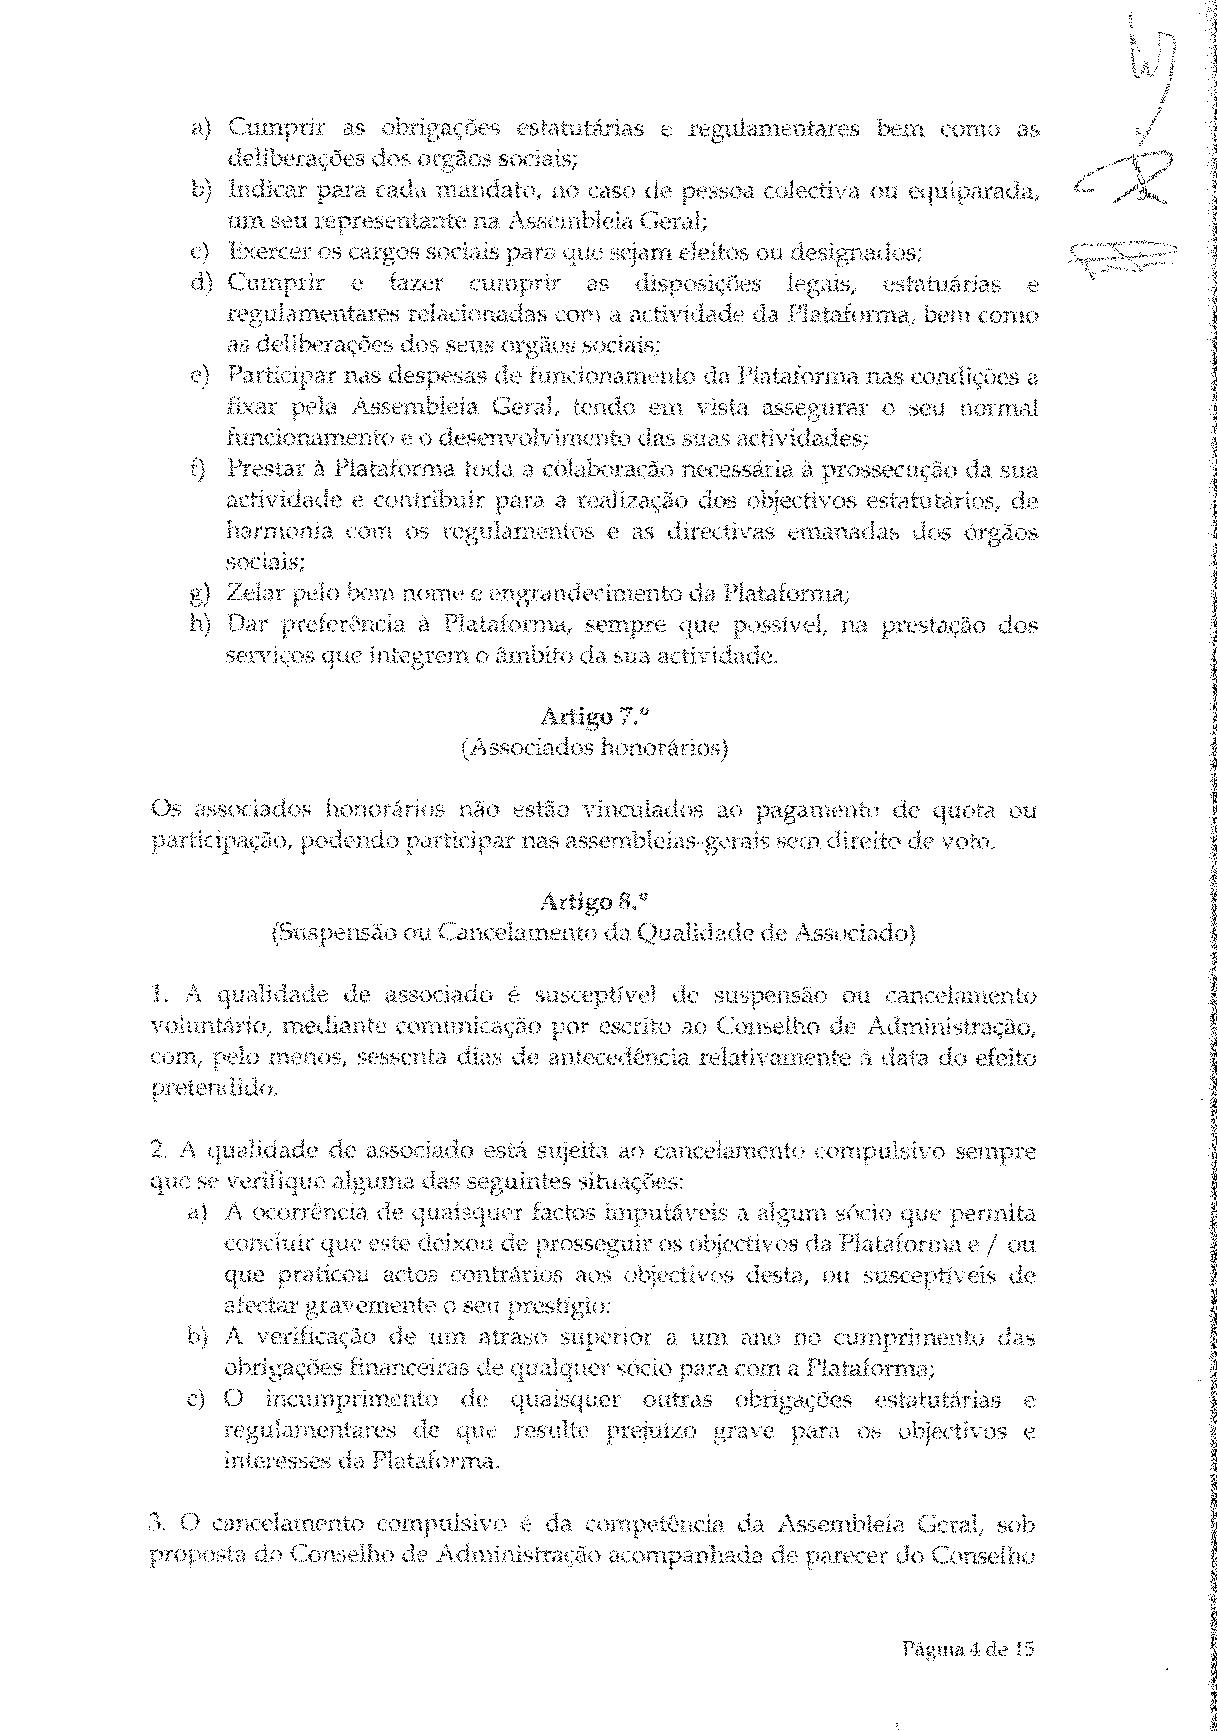 509402267_Associacao_BLC_rectificacao (5)-page-010